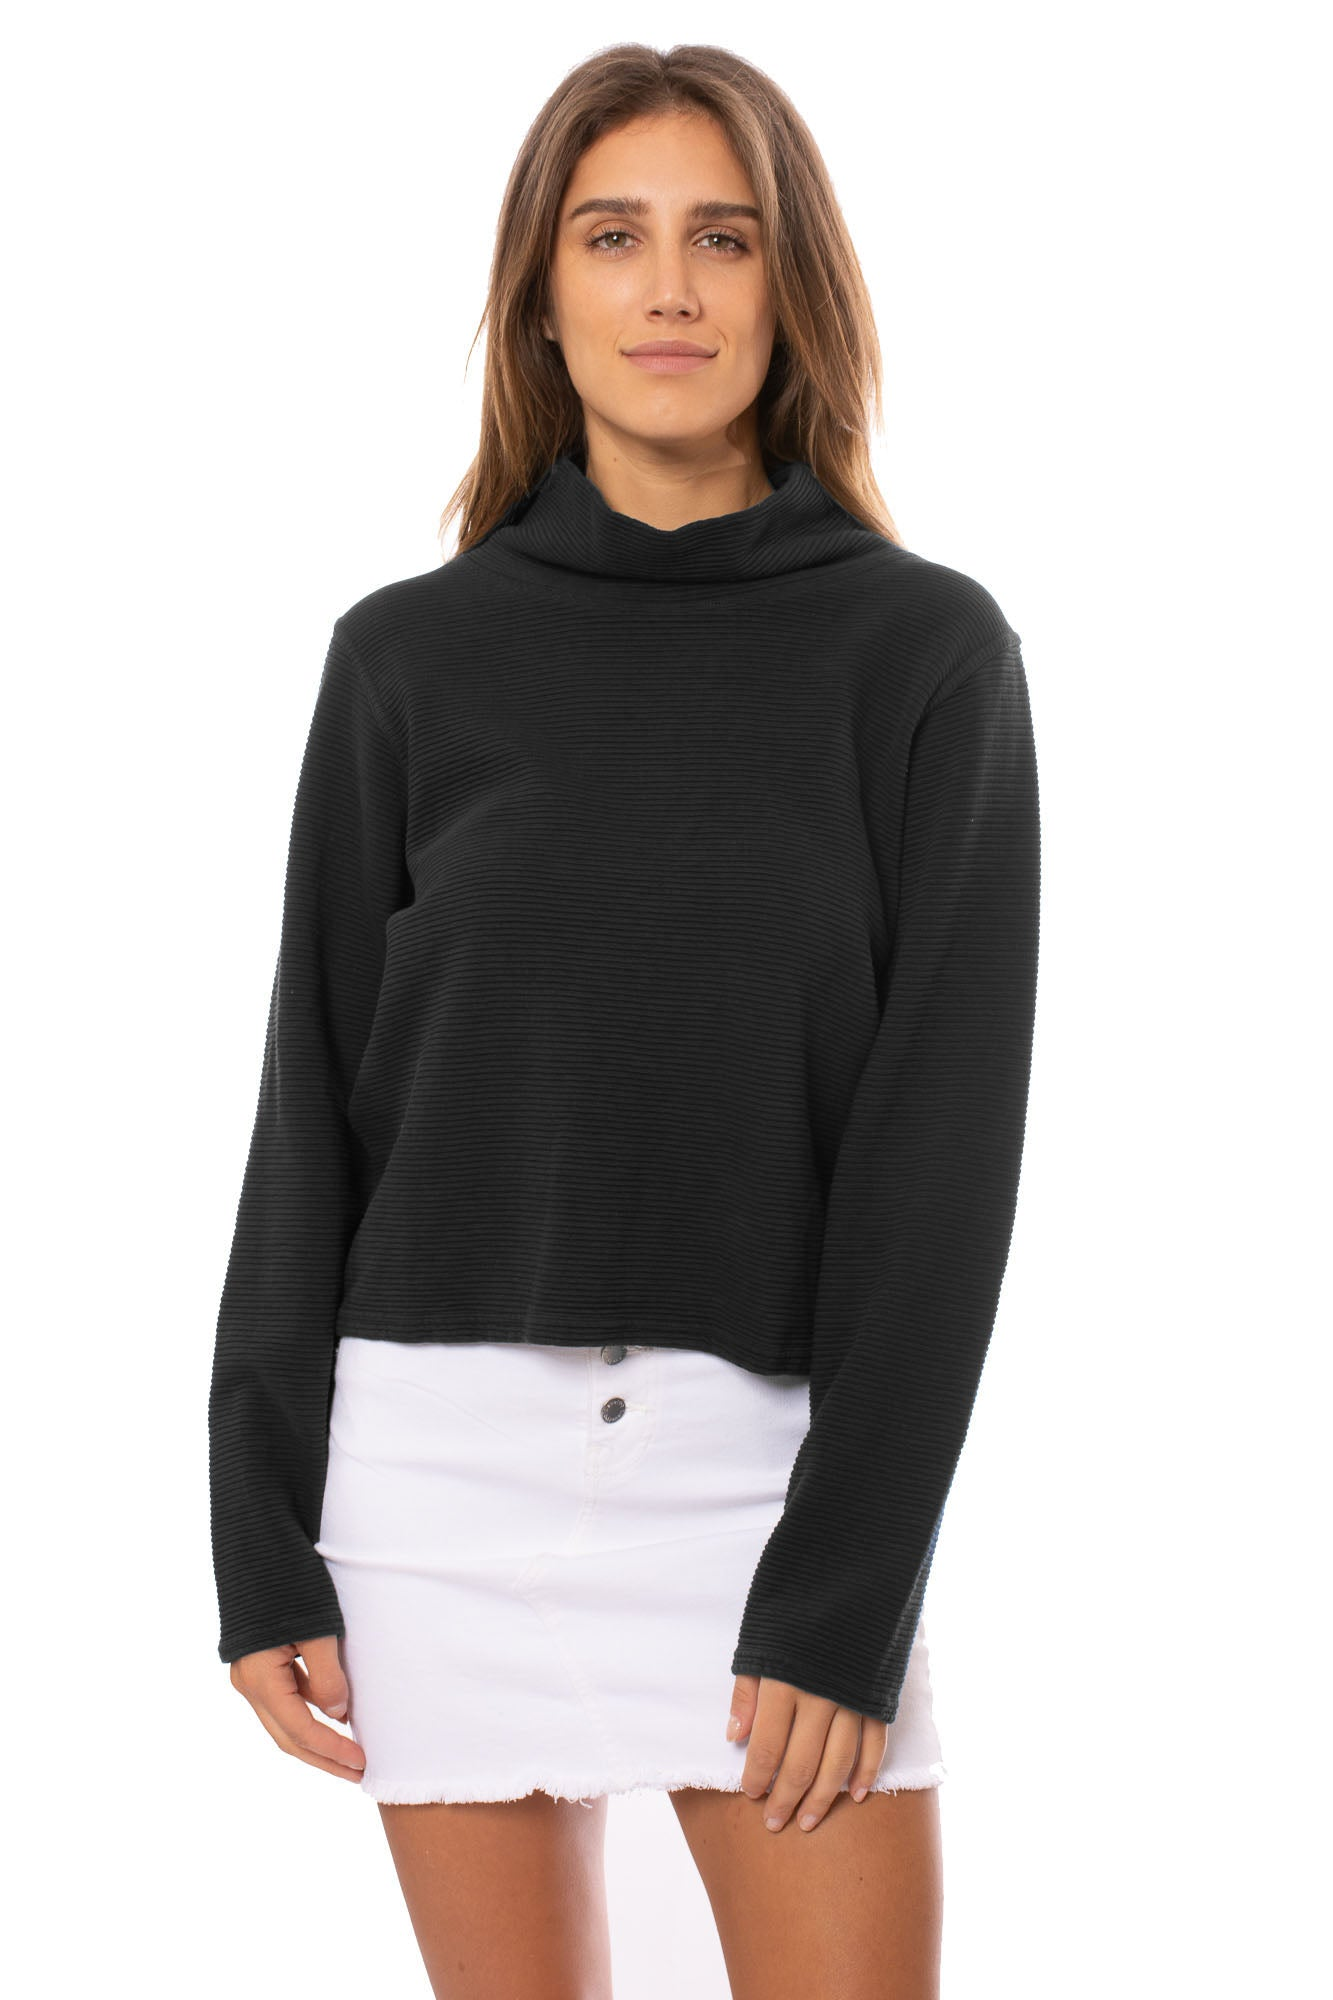 Hard Tail Forever - Cowl Neck Pullover (DL-14, Black) alt view 1